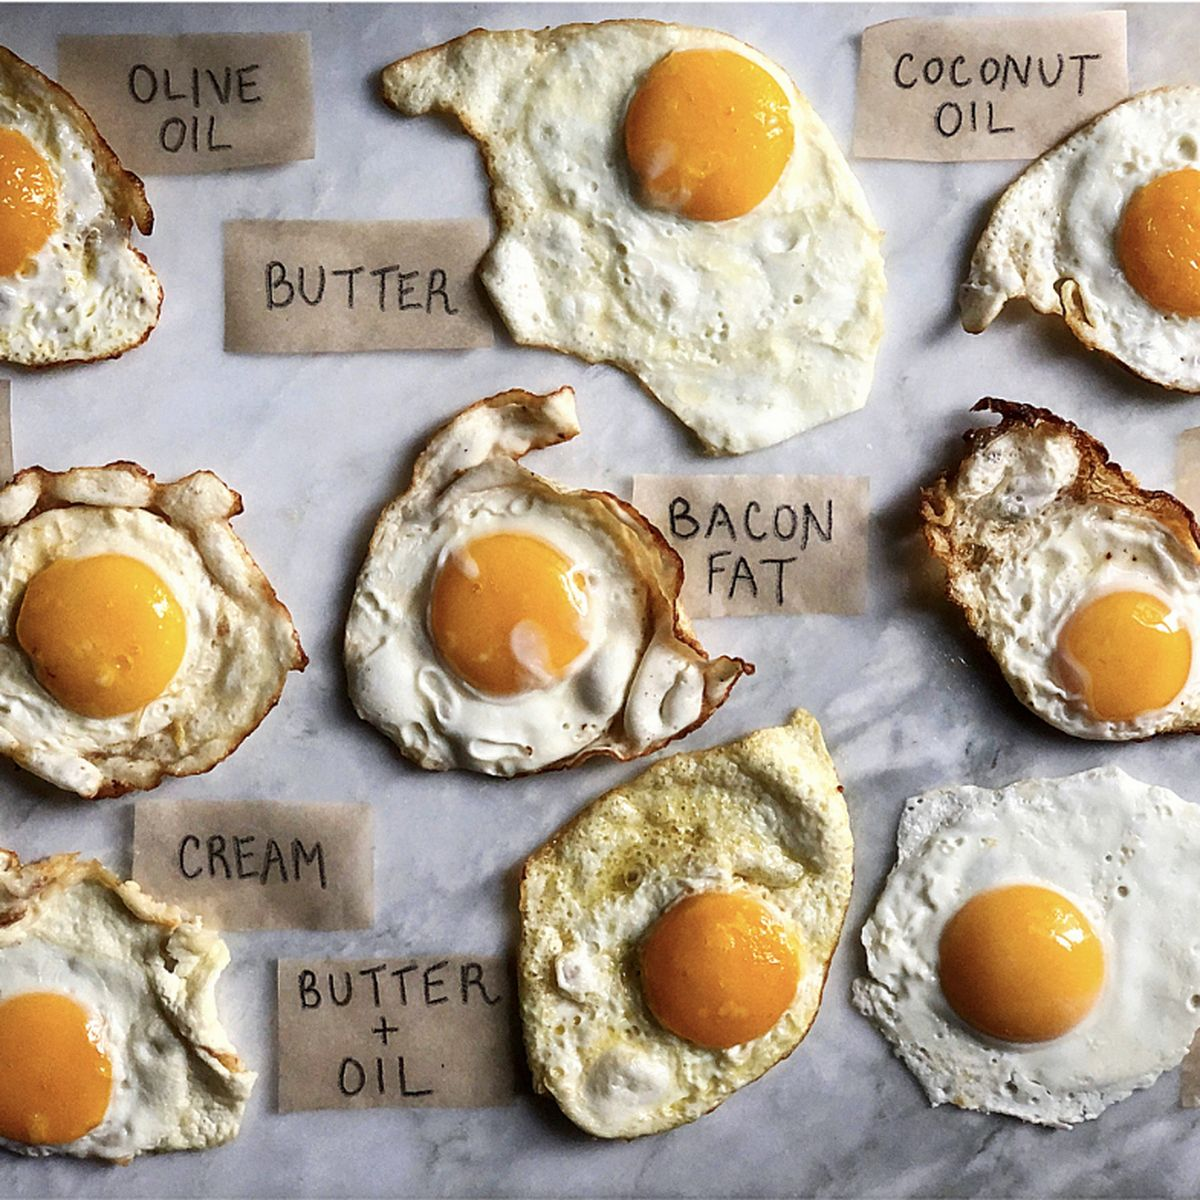 How To Fry An Egg Best Fried Egg Recipe According To 42 Tests